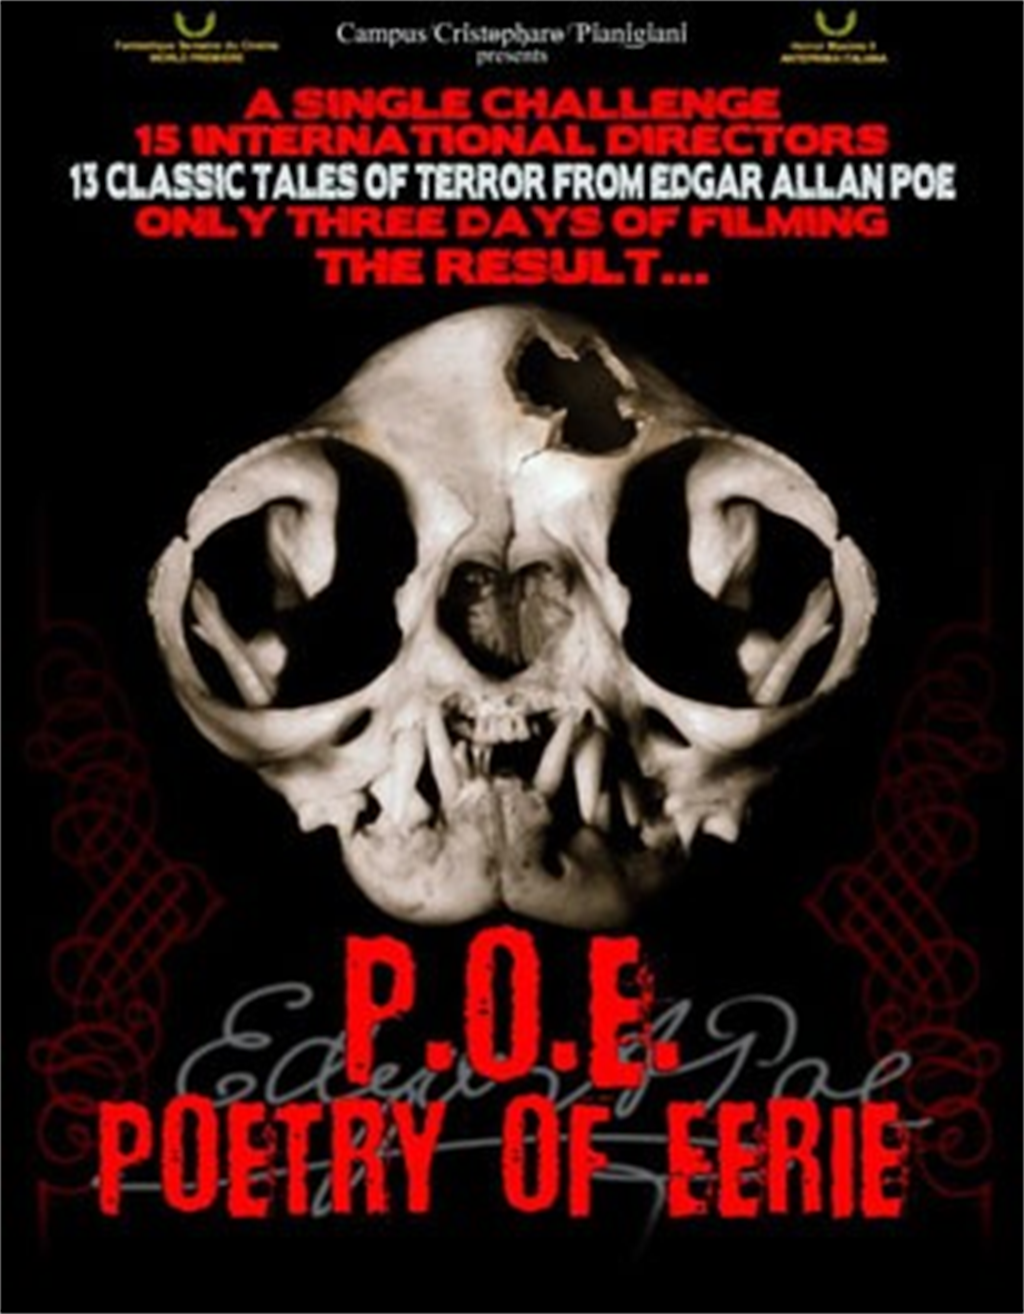 P.O.E. - Poetry of Eerie